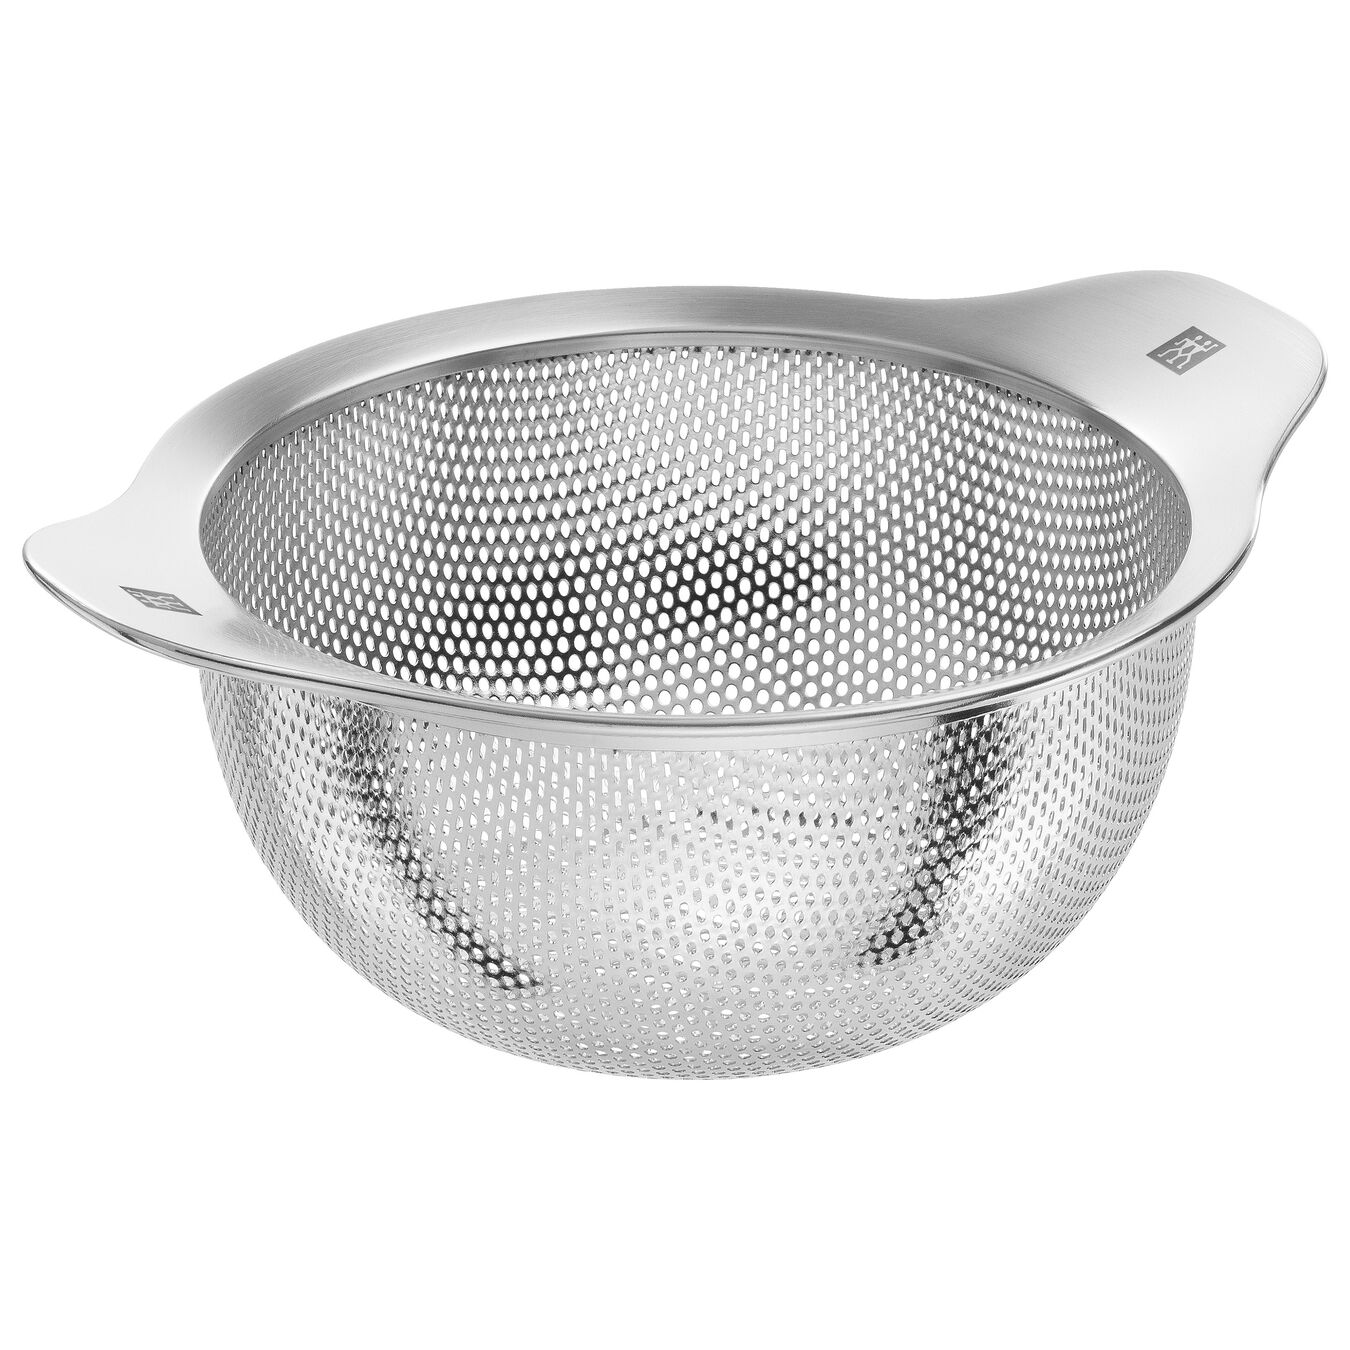 16 cm 18/10 Stainless Steel Colander,,large 1